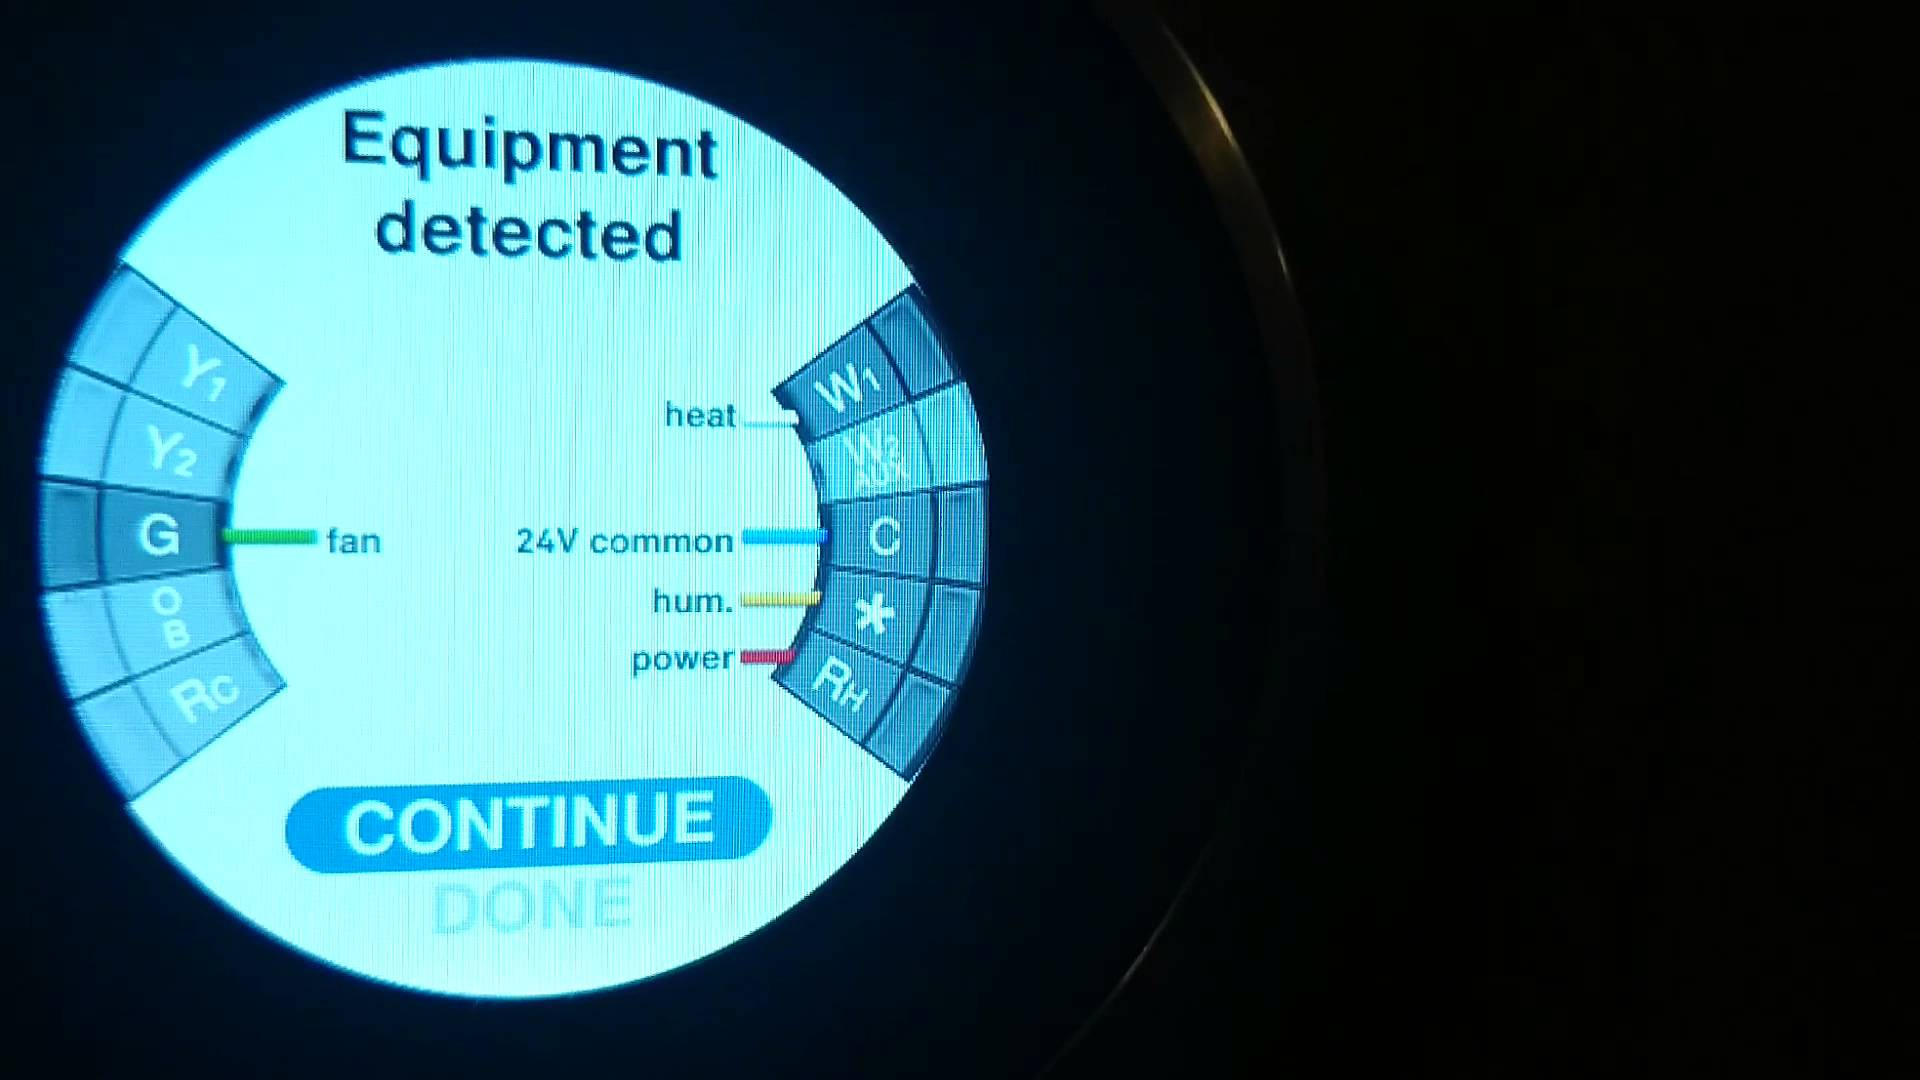 Wiring Diagram For Nest Thermostat With Humidifier - Wiring Diagrams - 4 Wire Nest Thermostat Wiring Diagram